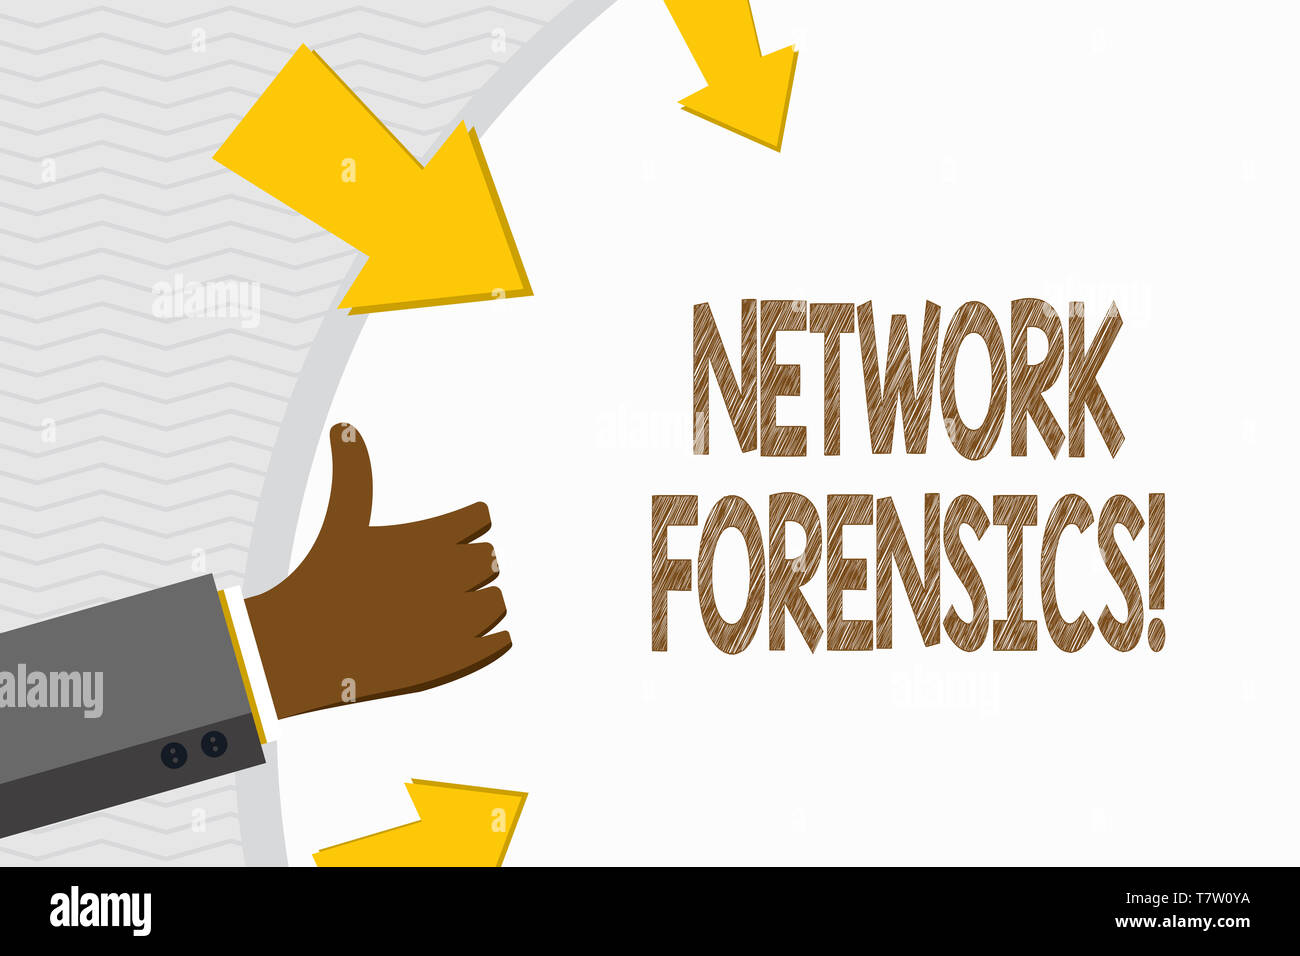 Conceptual hand writing showing Network Forensics. Concept meaning monitoring and analysis of computer network traffic Hand Gesturing Thumbs Up and Ho - Stock Image